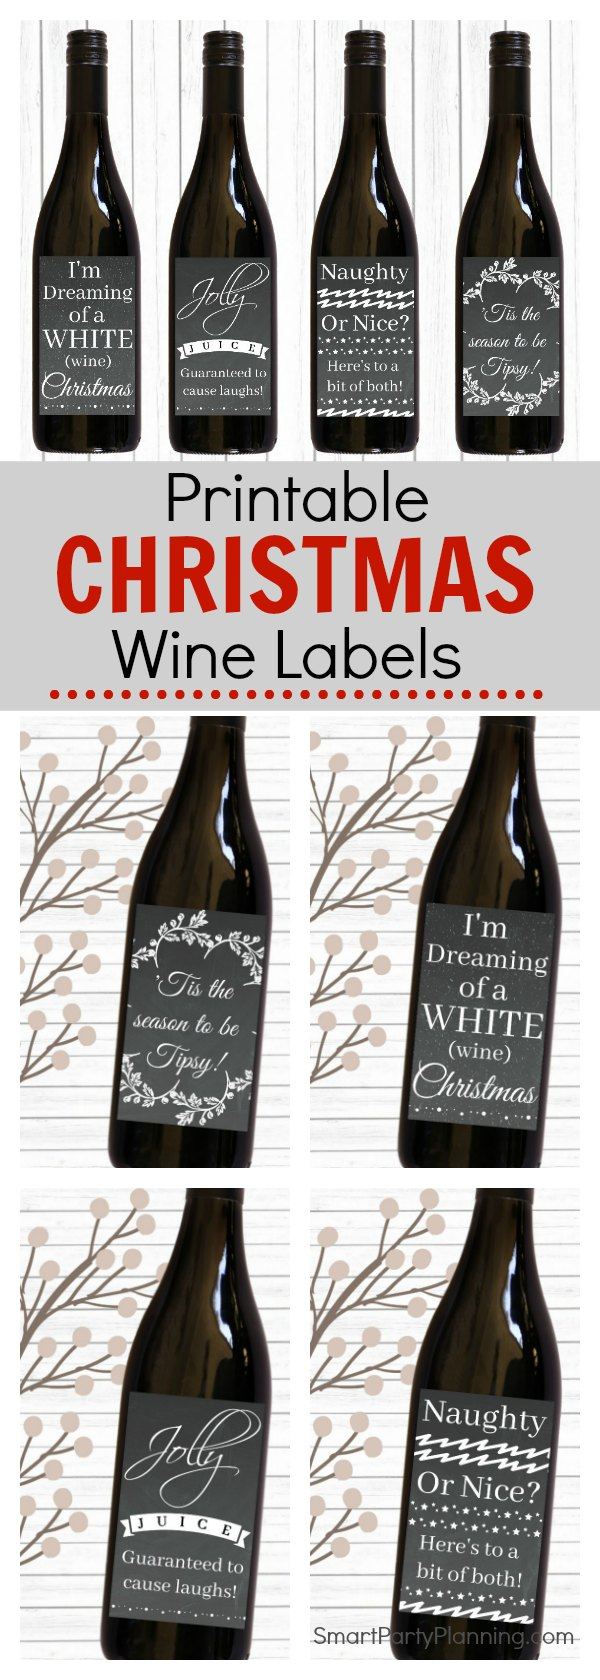 Struggling to think of the perfect Christmas gift? This one will hit the spot with the wine lovers. Add a printable Christmas wine label to a delicious bottle of wine and you find yourself with the perfect gift every single time. There are 4 chalkboard Christmas designs to choose from, each one with their own element of fun. This is one of the best Christmas DIY ideas you can have!